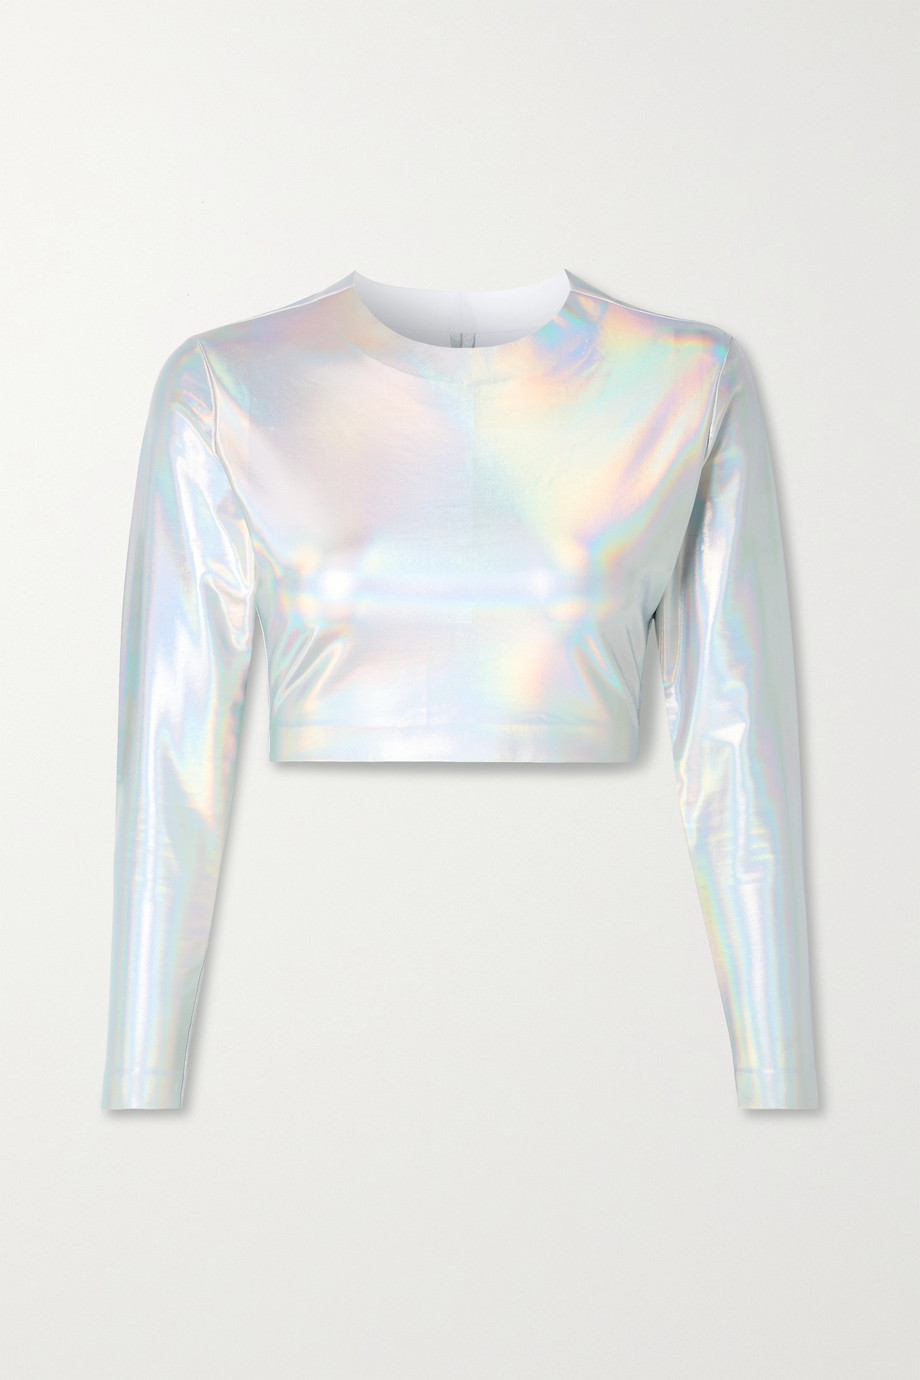 Norma Kamali Cropped iridescent coated stretch-jersey top